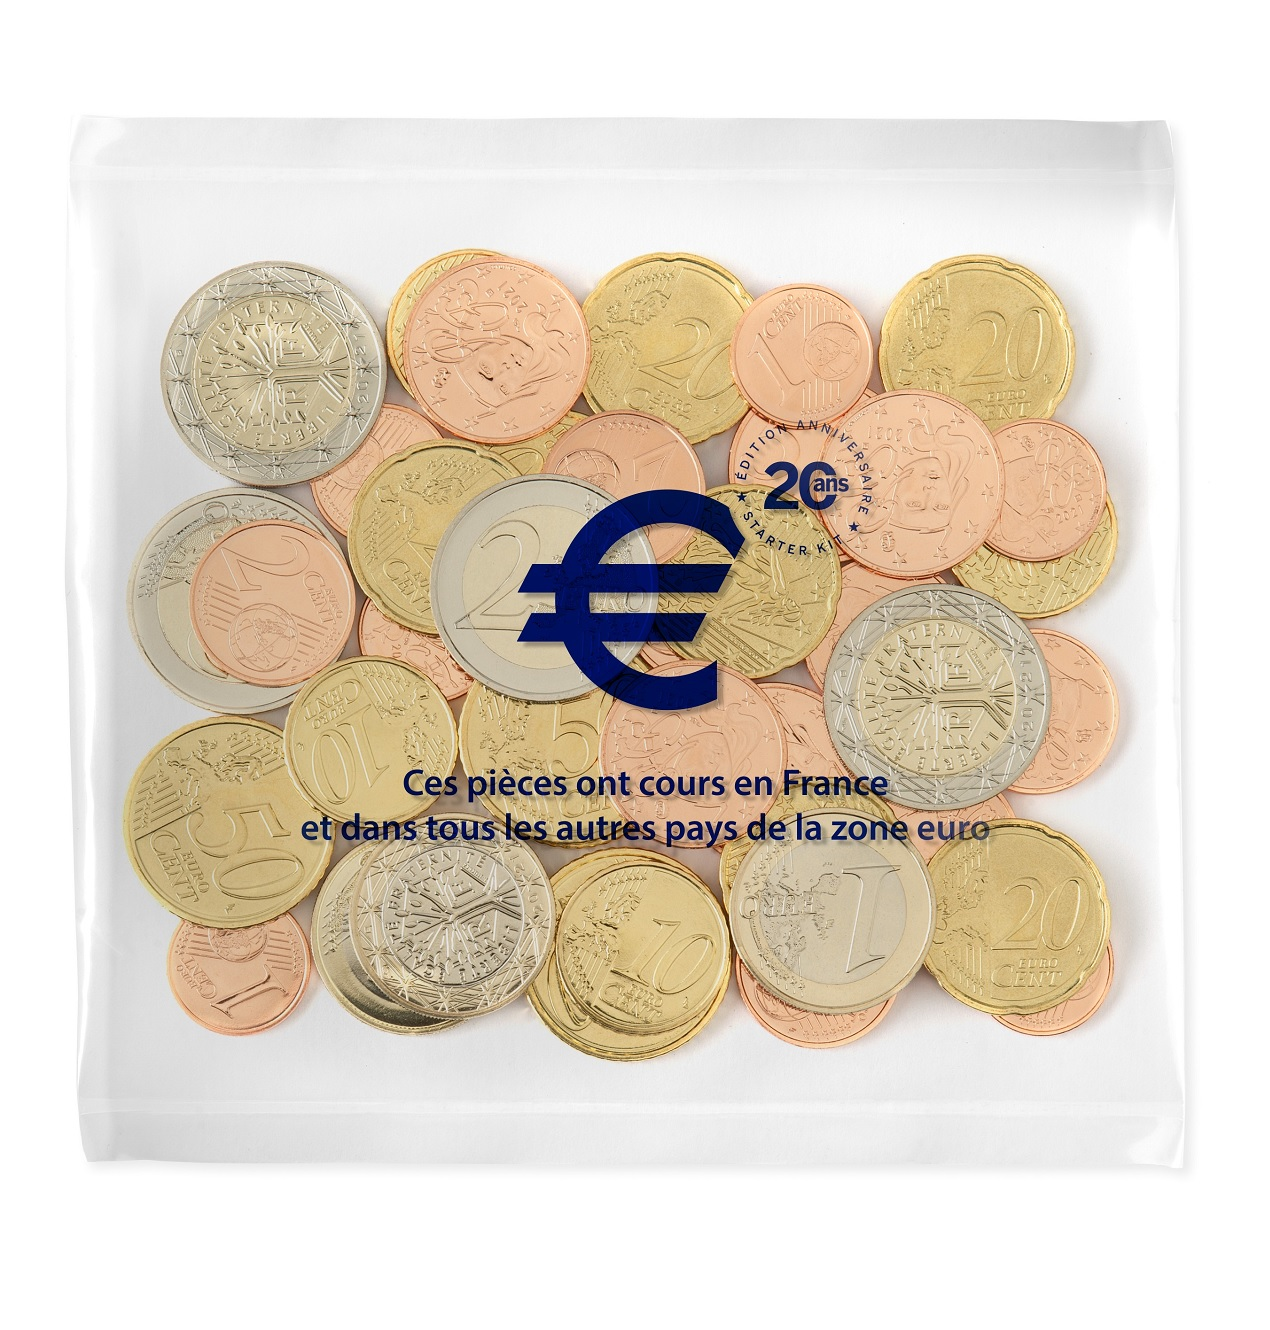 (EUR07.SK.2021.10041356200000) Starter-kit (reissue) France 2021 Back (zoom)